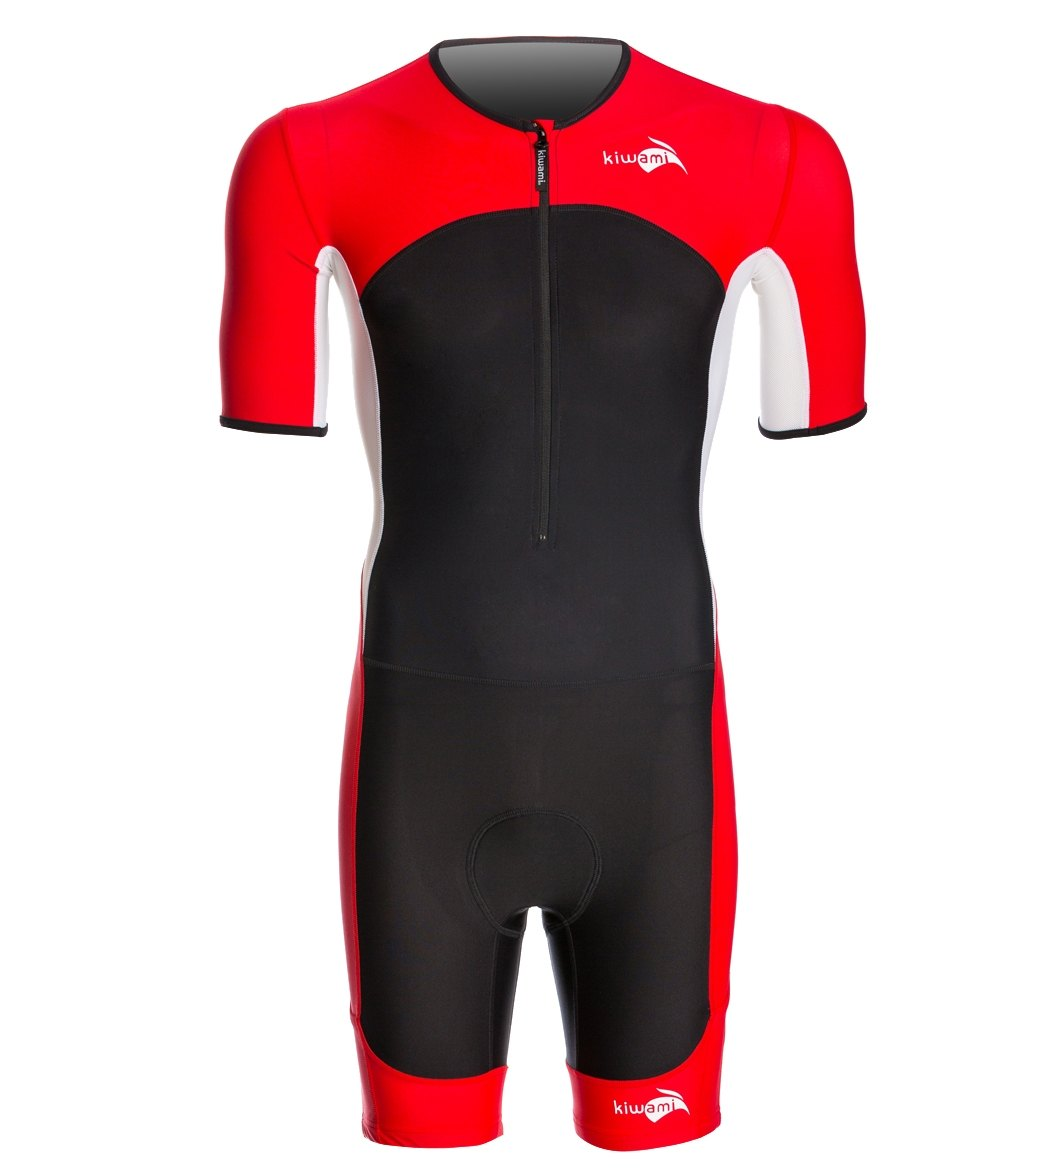 f0b38f66c89 Kiwami Men s Prima LD Aero Trisuit at SwimOutlet.com - Free Shipping